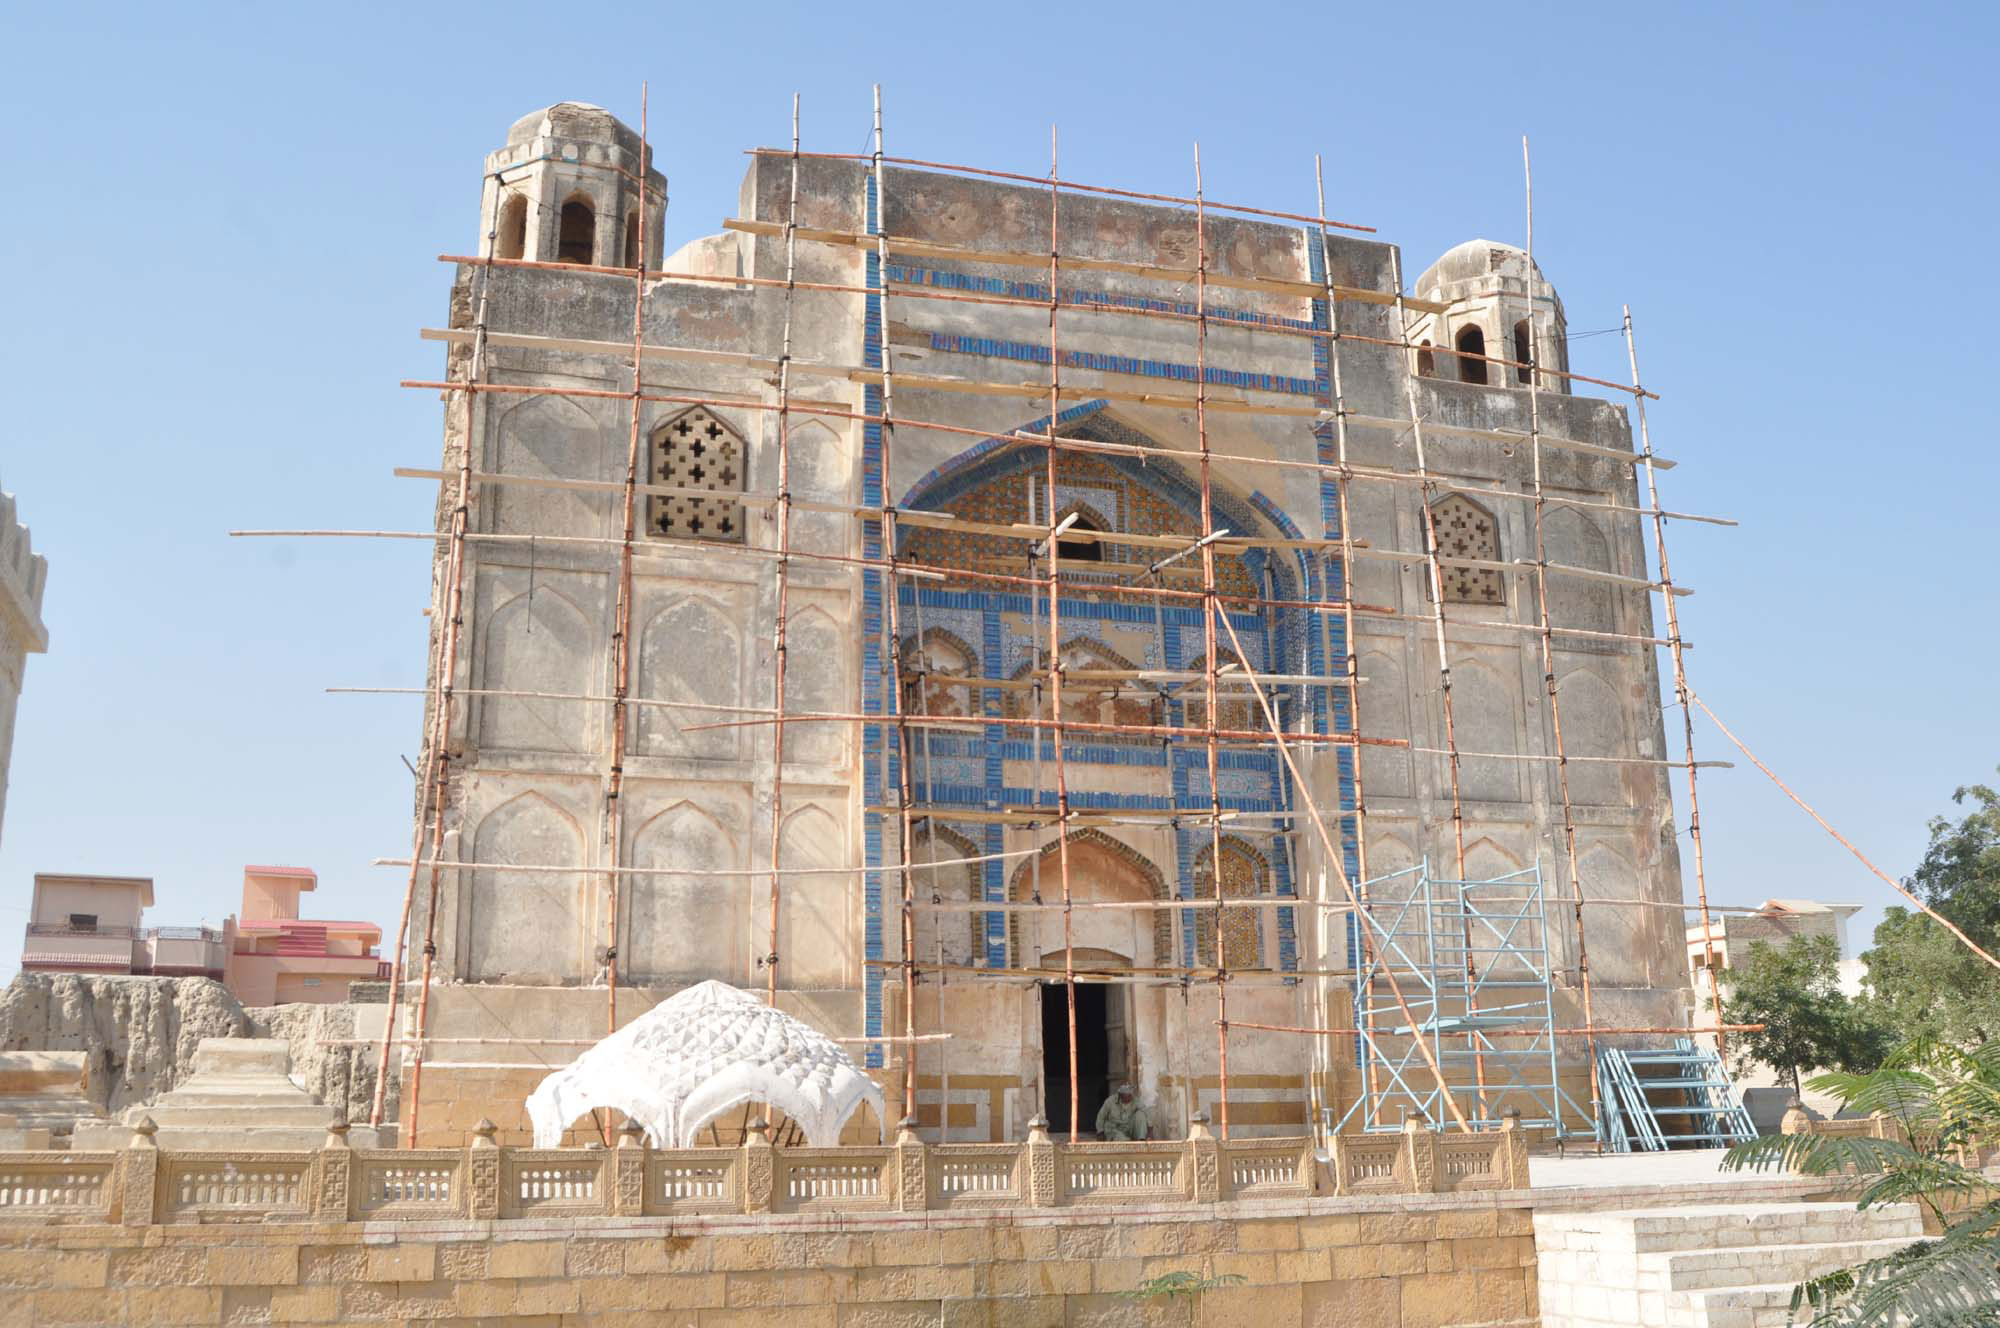 Around six months ago, Endowment Fund Trust embarked on a journey to restore an 18th century mausoleum of the Kalhoro dynasty's ruler Mian Ghulam Shah Kalhoro, the man who founded Hyderabad. PHOTO: Z ALI/EXPRESS